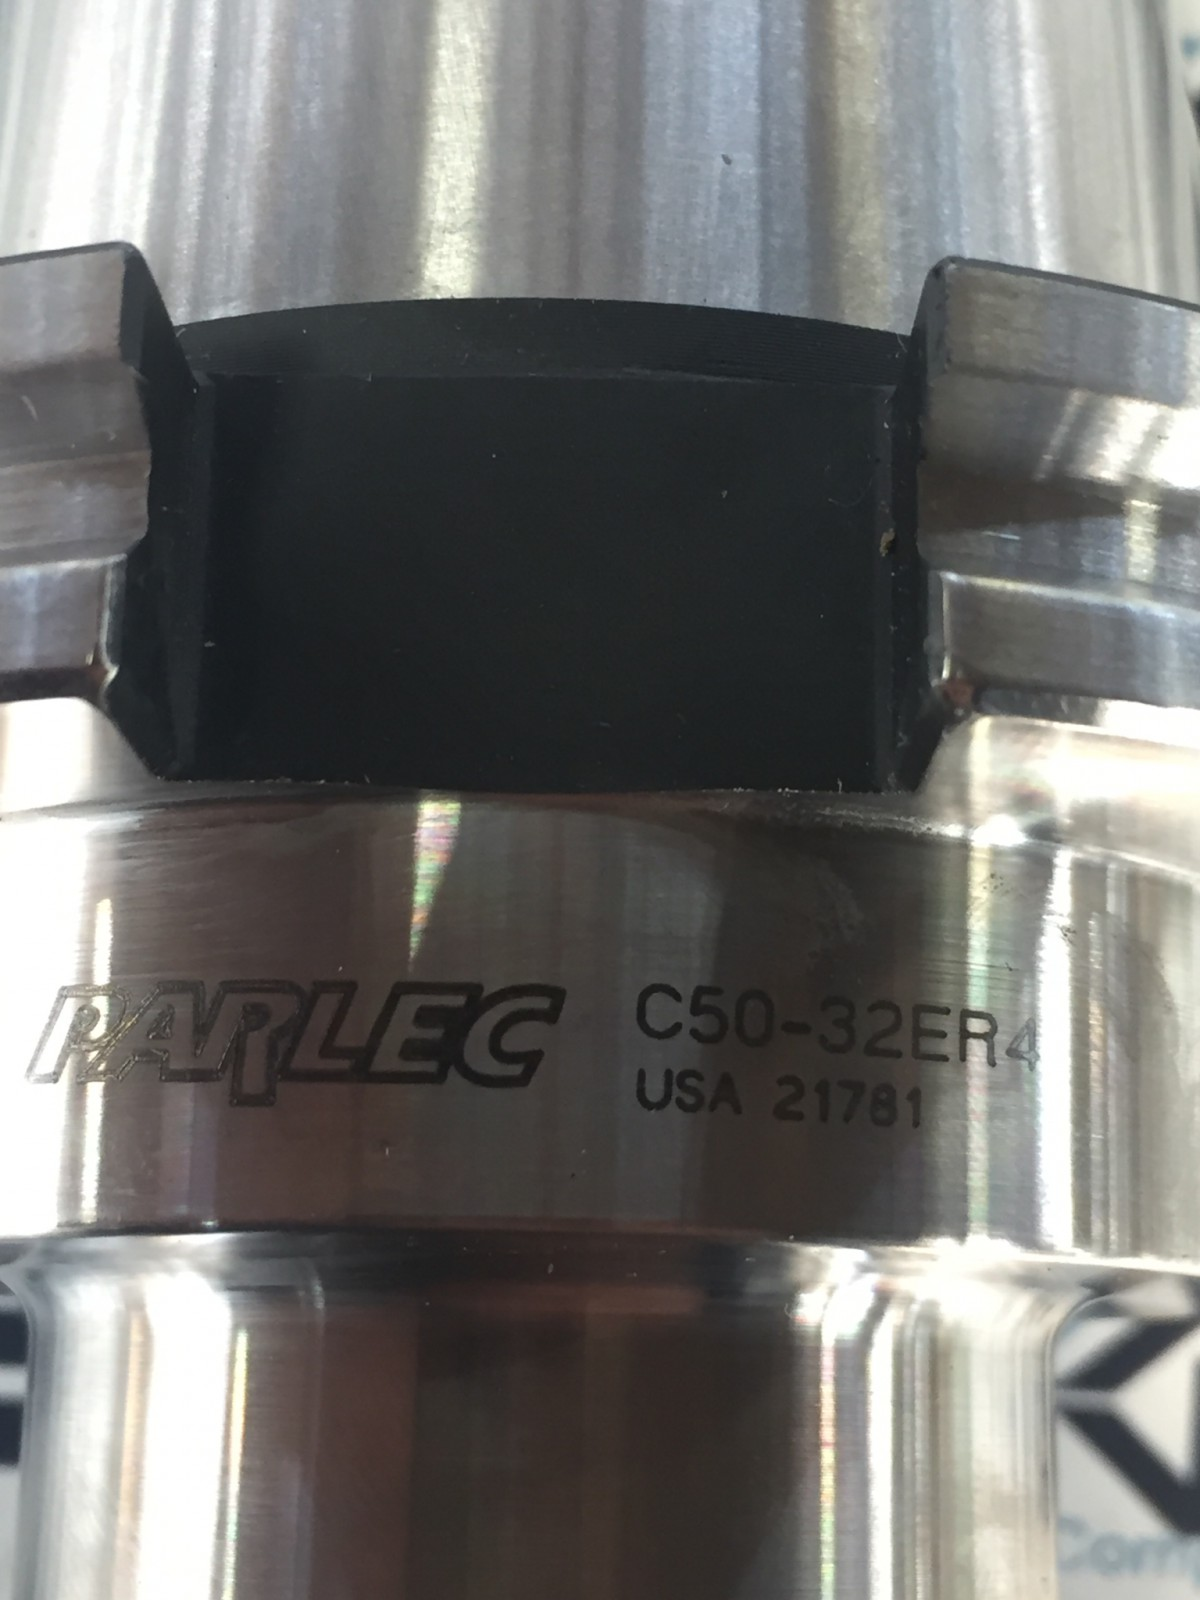 PARLEC C50-32ER4 COLLET CHUCK TOOL HOLDER